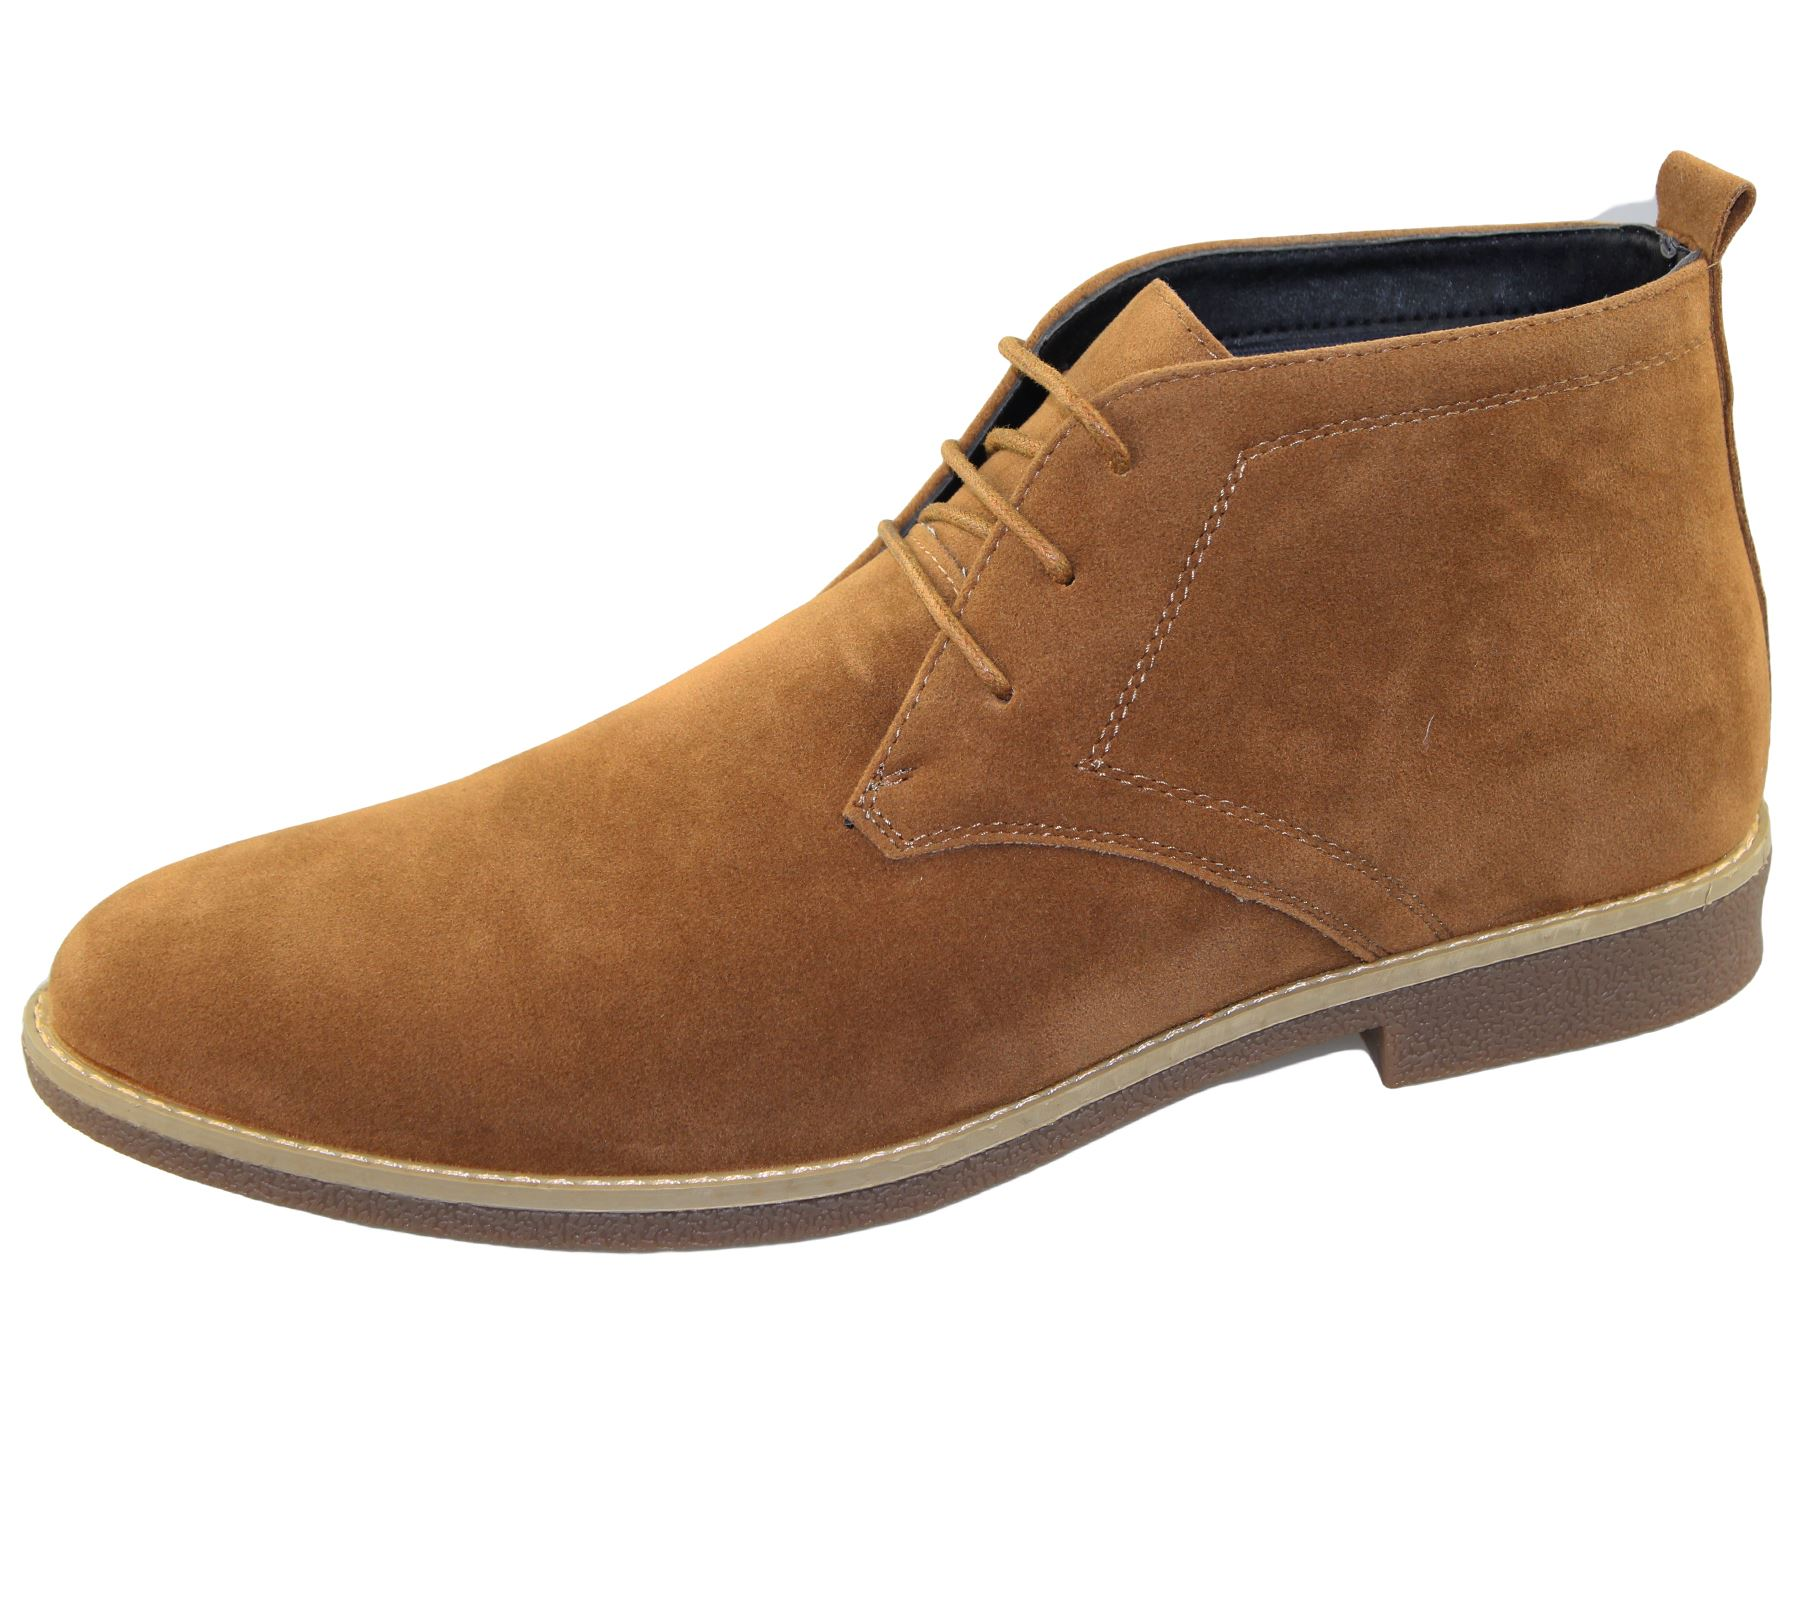 mens suede desert boots winter ankle high top classic casual lace up shoes size ebay. Black Bedroom Furniture Sets. Home Design Ideas